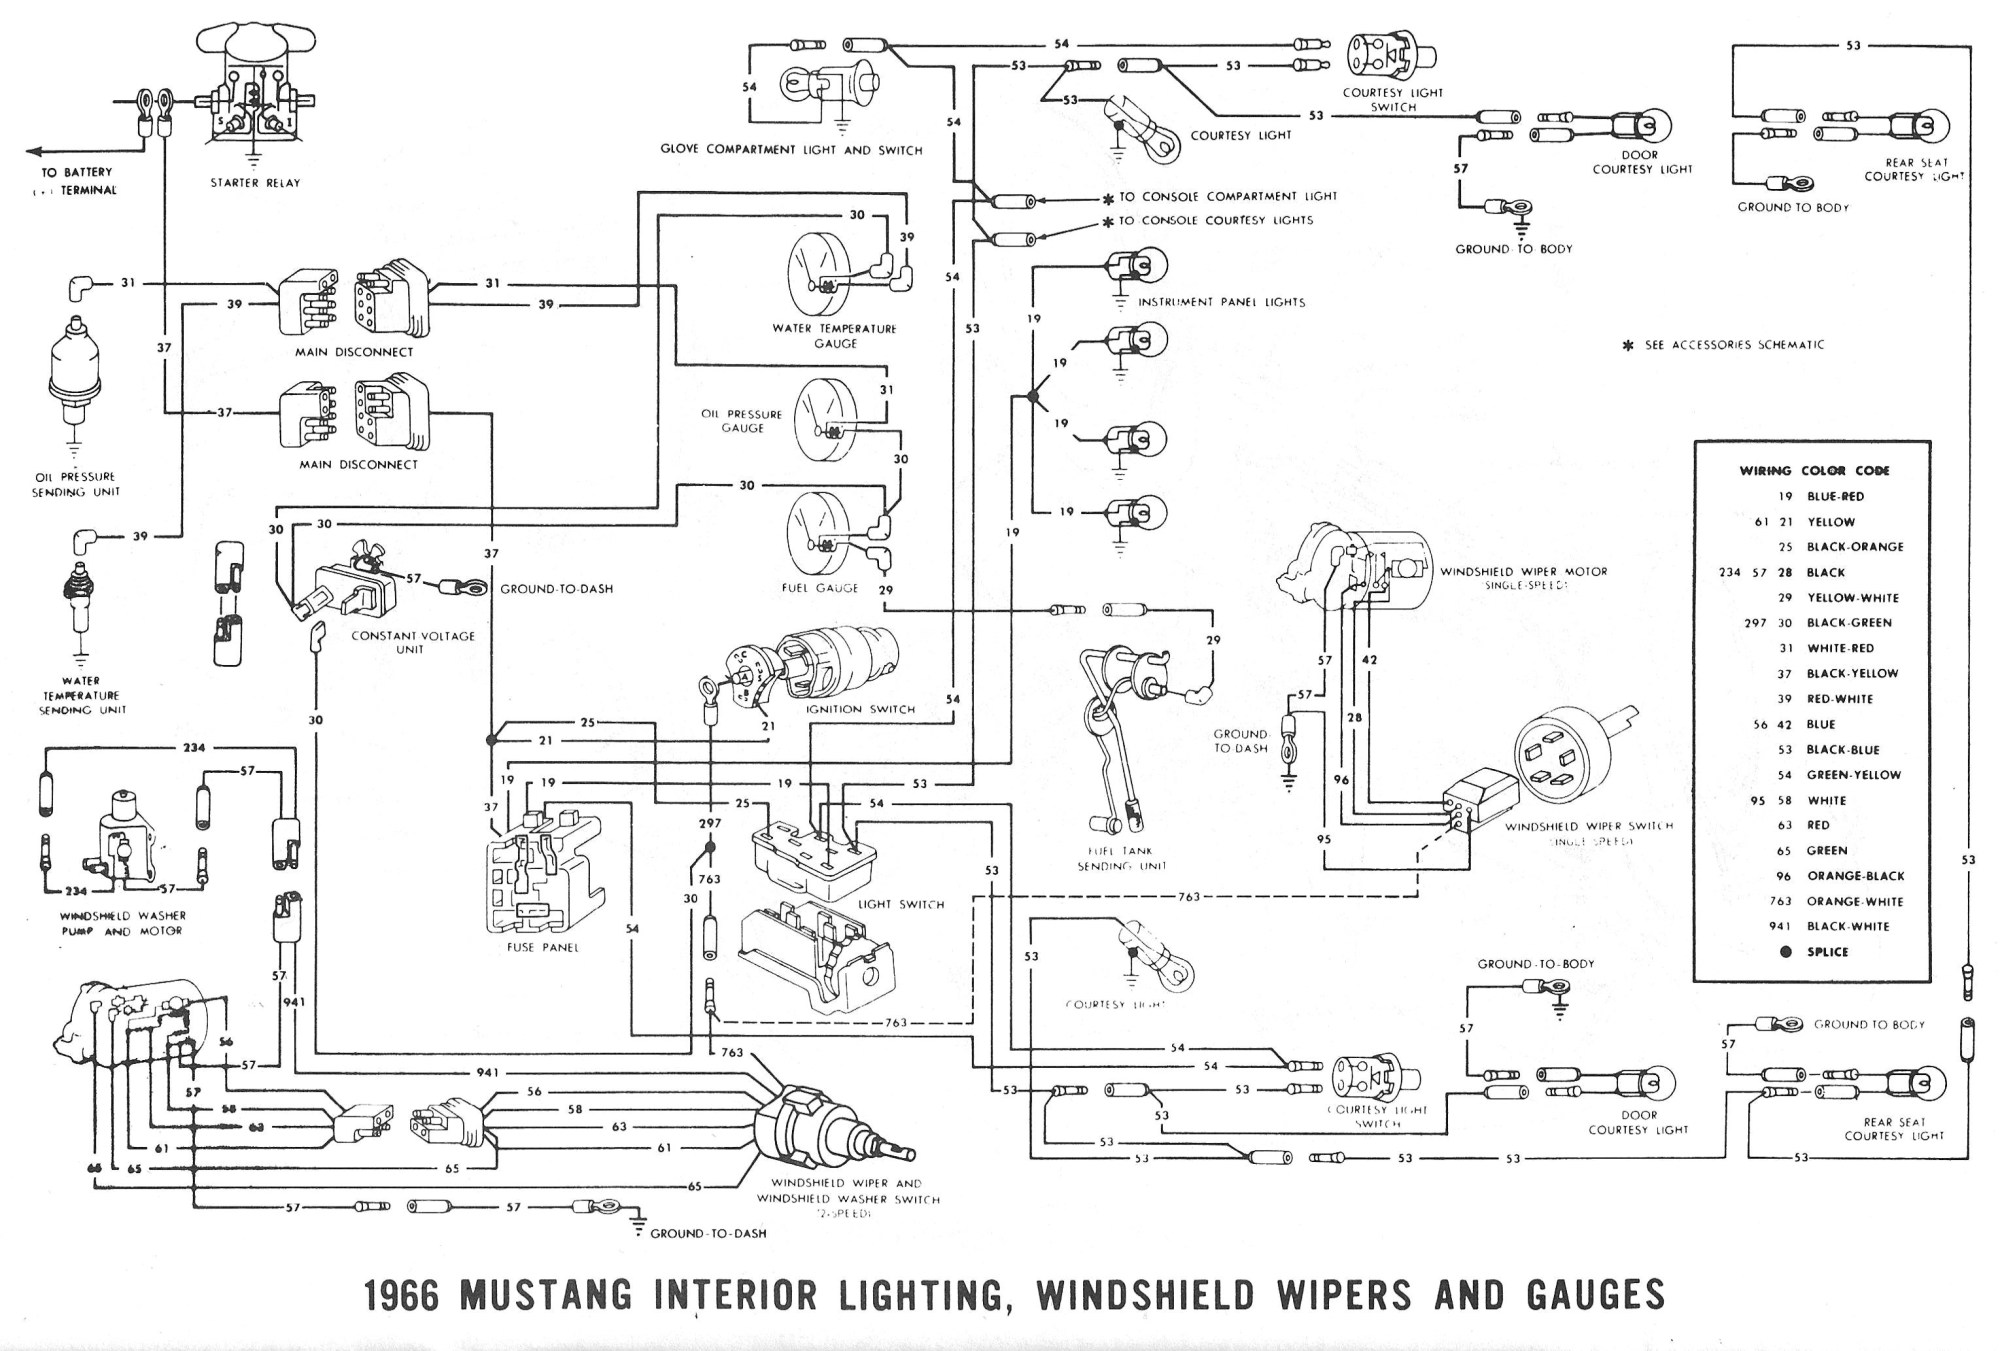 hight resolution of 1993 mustang wiring harness diagram wiring diagram img 1993 mustang wiring harness diagram